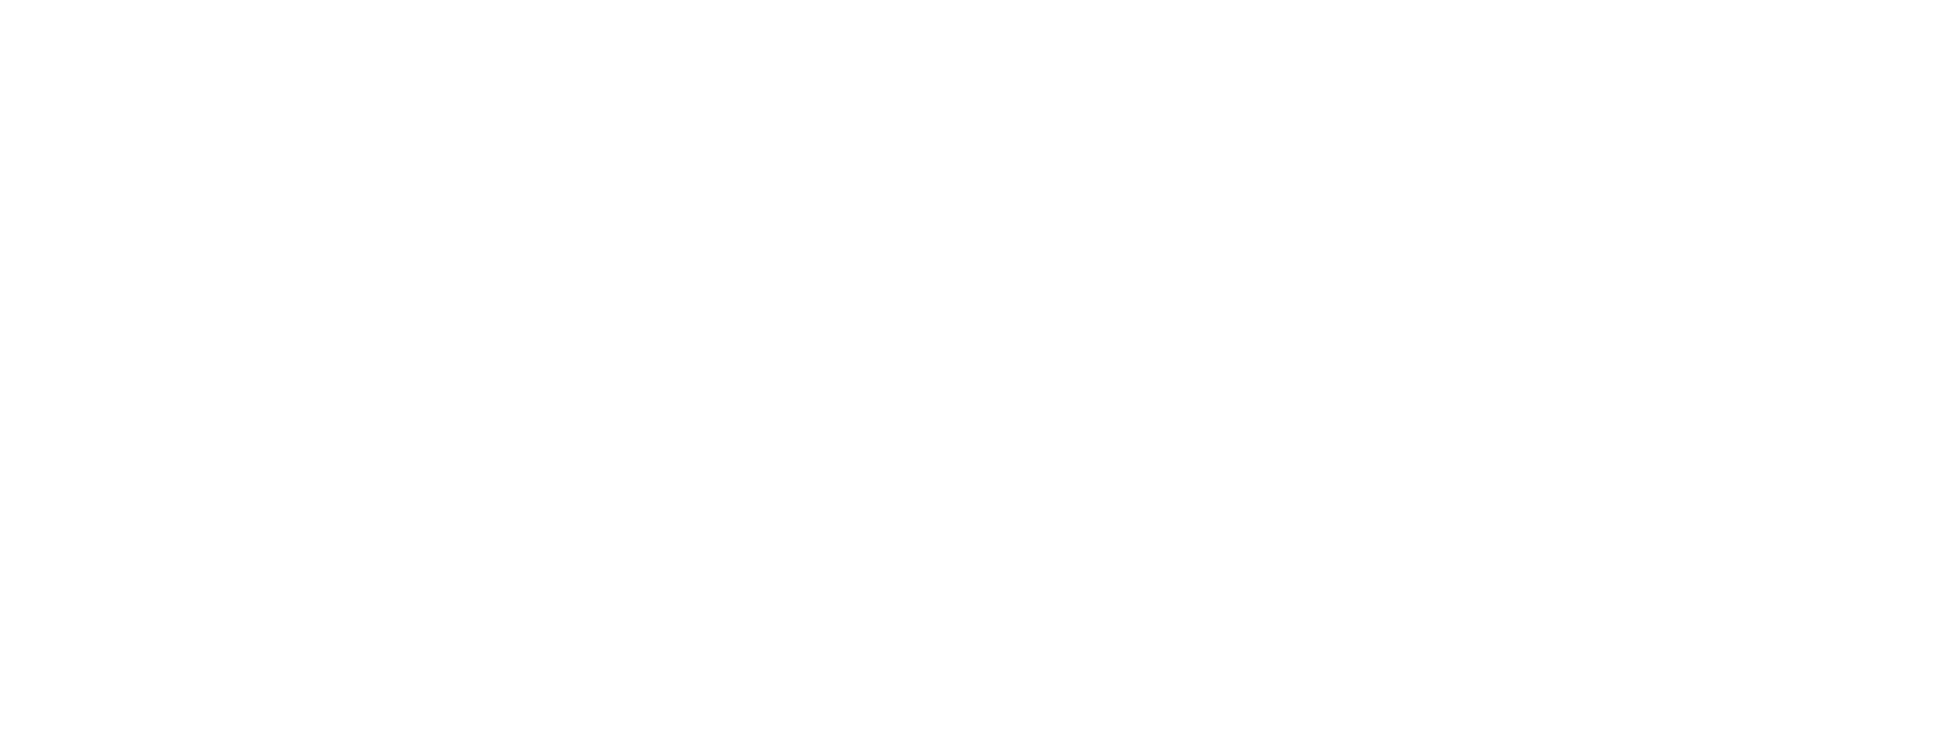 abc news logo white